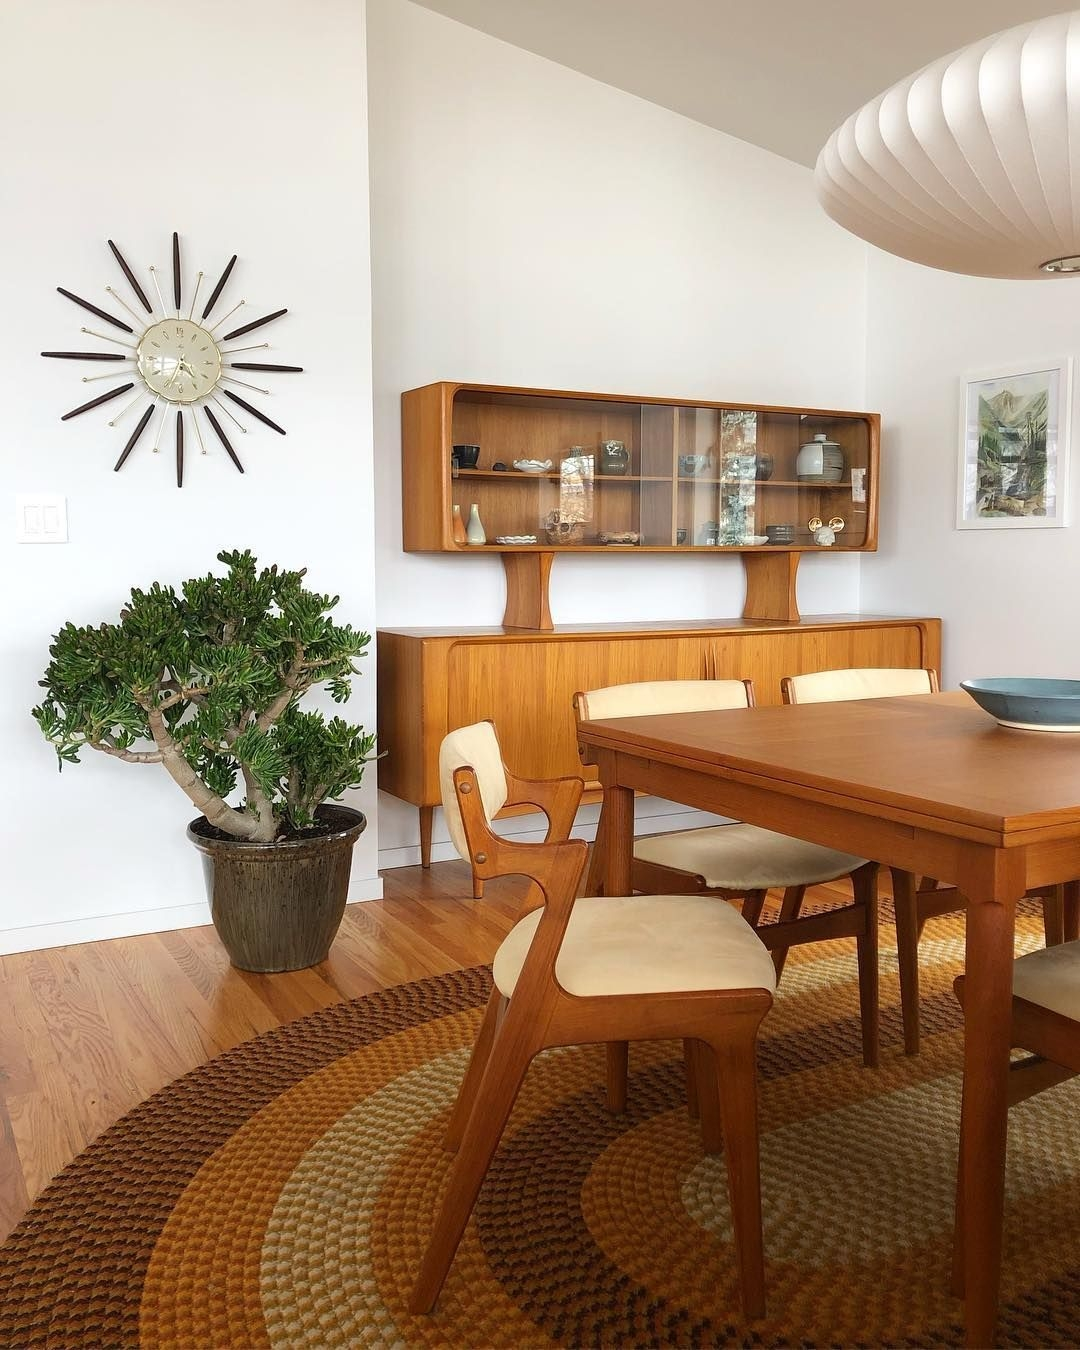 Inspiring Mid Century Furniture Ideas To Try34